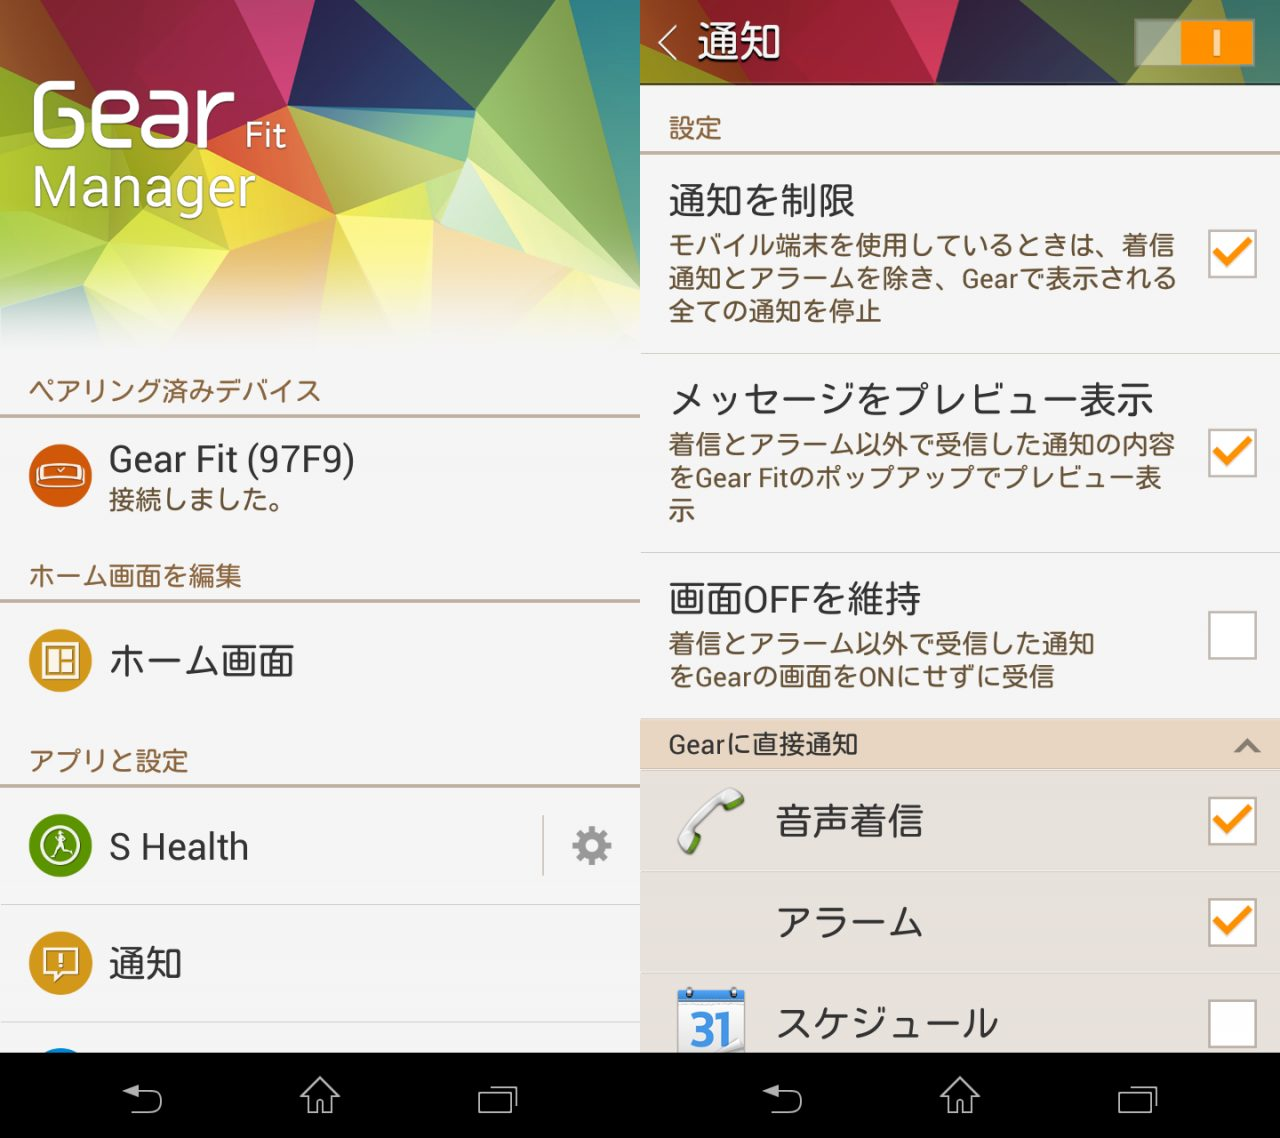 gearfitmanager